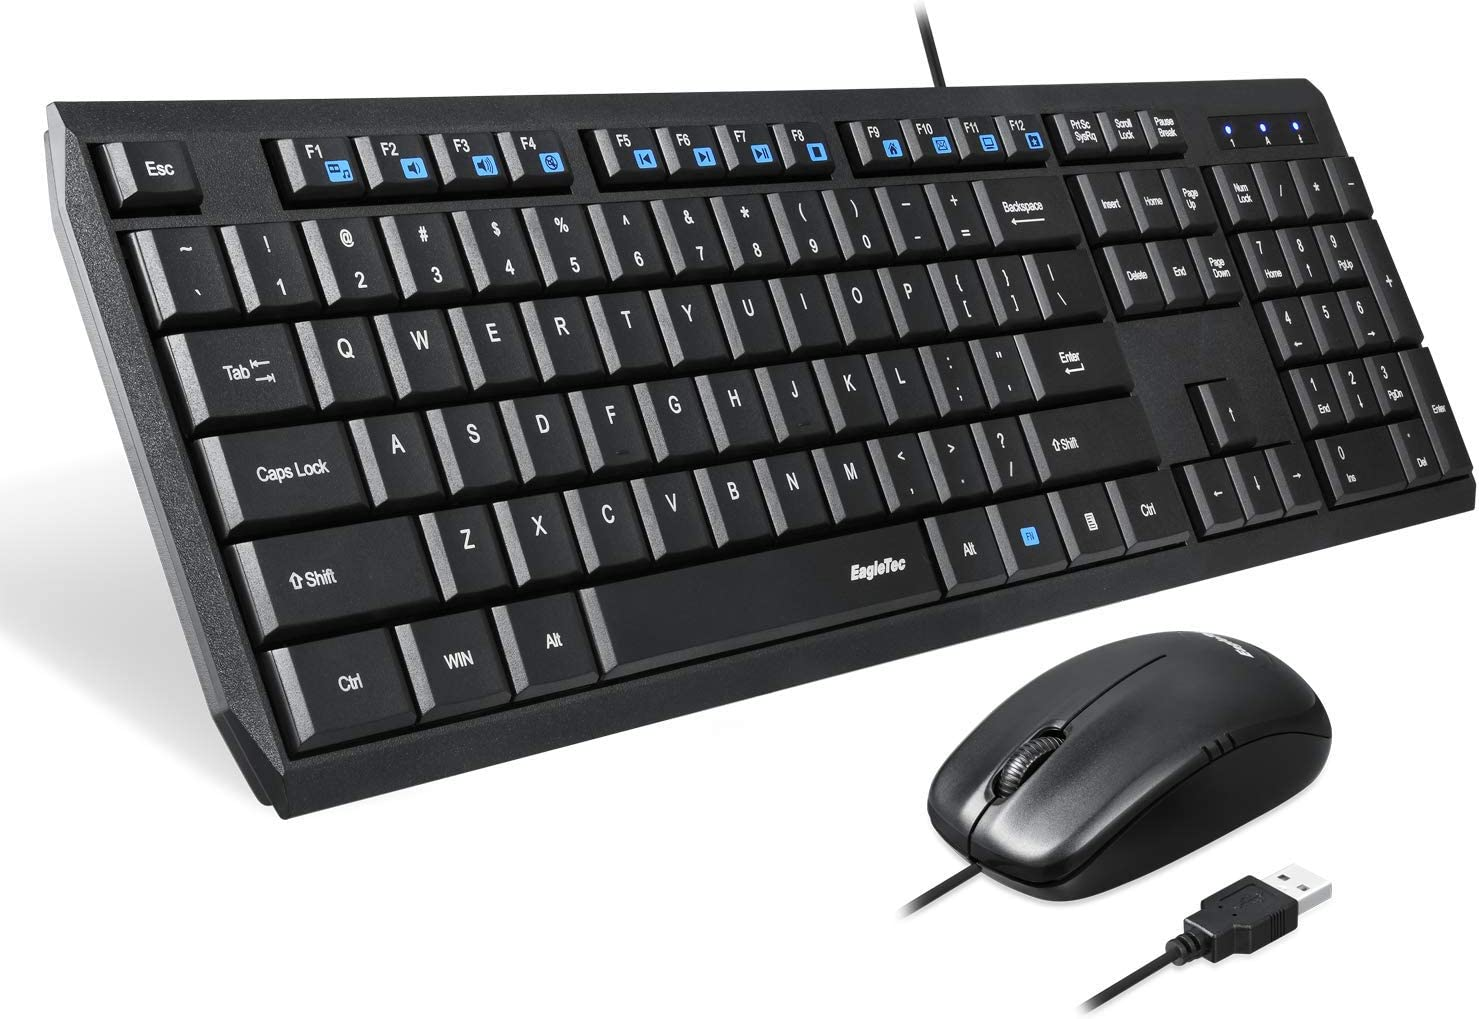 Eagletec KM120 Wired Keyboard and Mouse Combo Slim, Flat & Quiet, Ergonomic Full Size 104 Keys Keyboard & Small Portable Mouse for Windows PC (Black Wired Keyboard & Mouse Set)